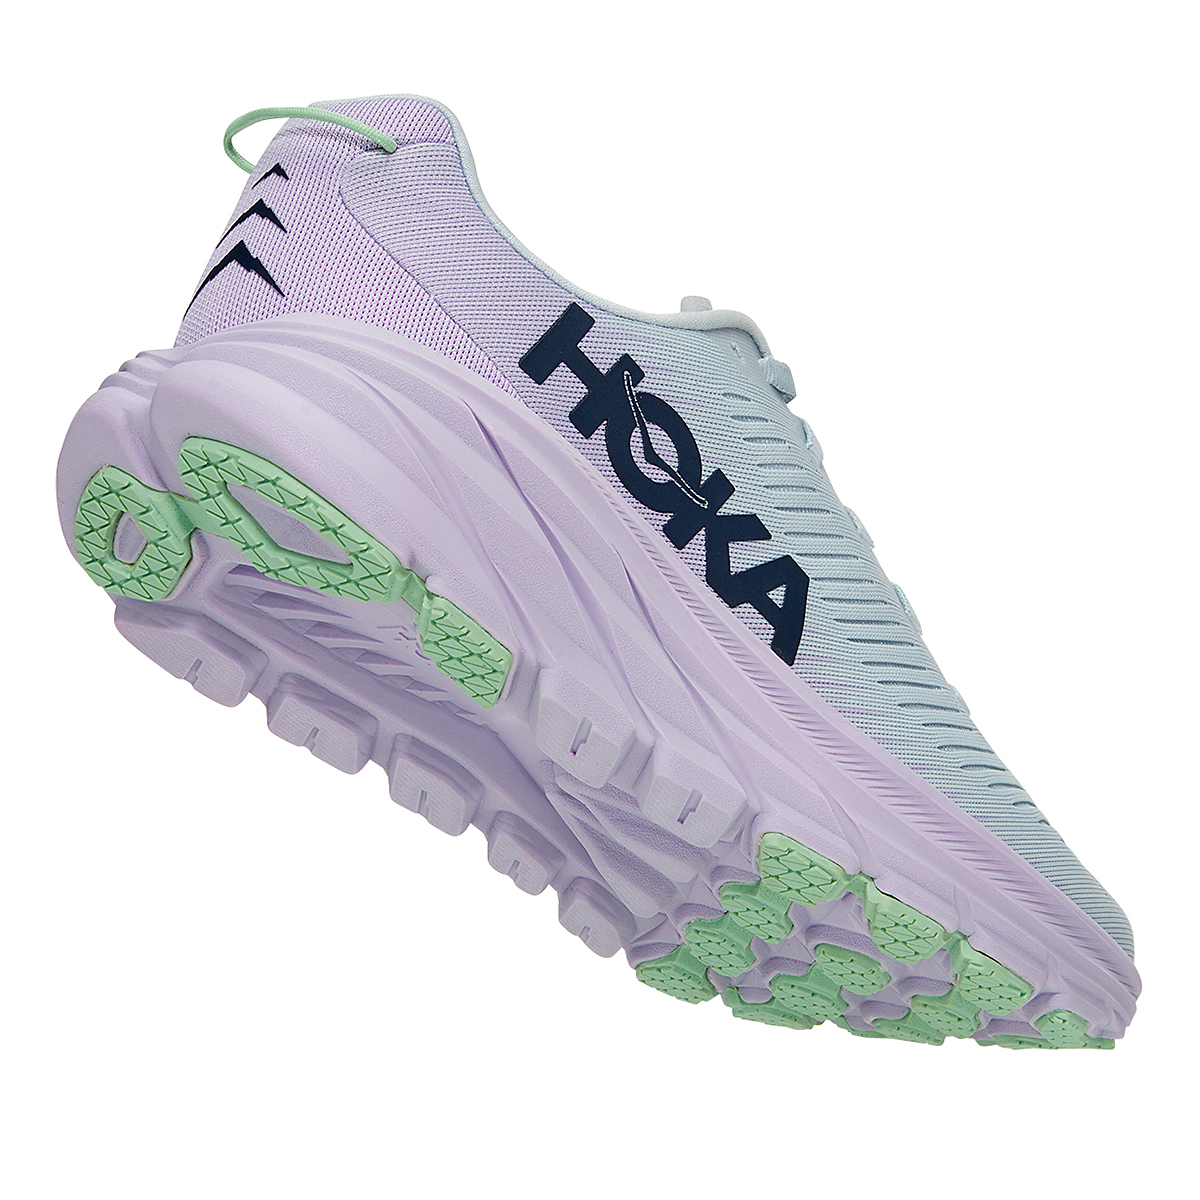 Women's Hoka One One Rincon 3 Running Shoe - Color: Plein Air/Orchid Hush - Size: 5 - Width: Regular, Plein Air/Orchid Hush, large, image 3